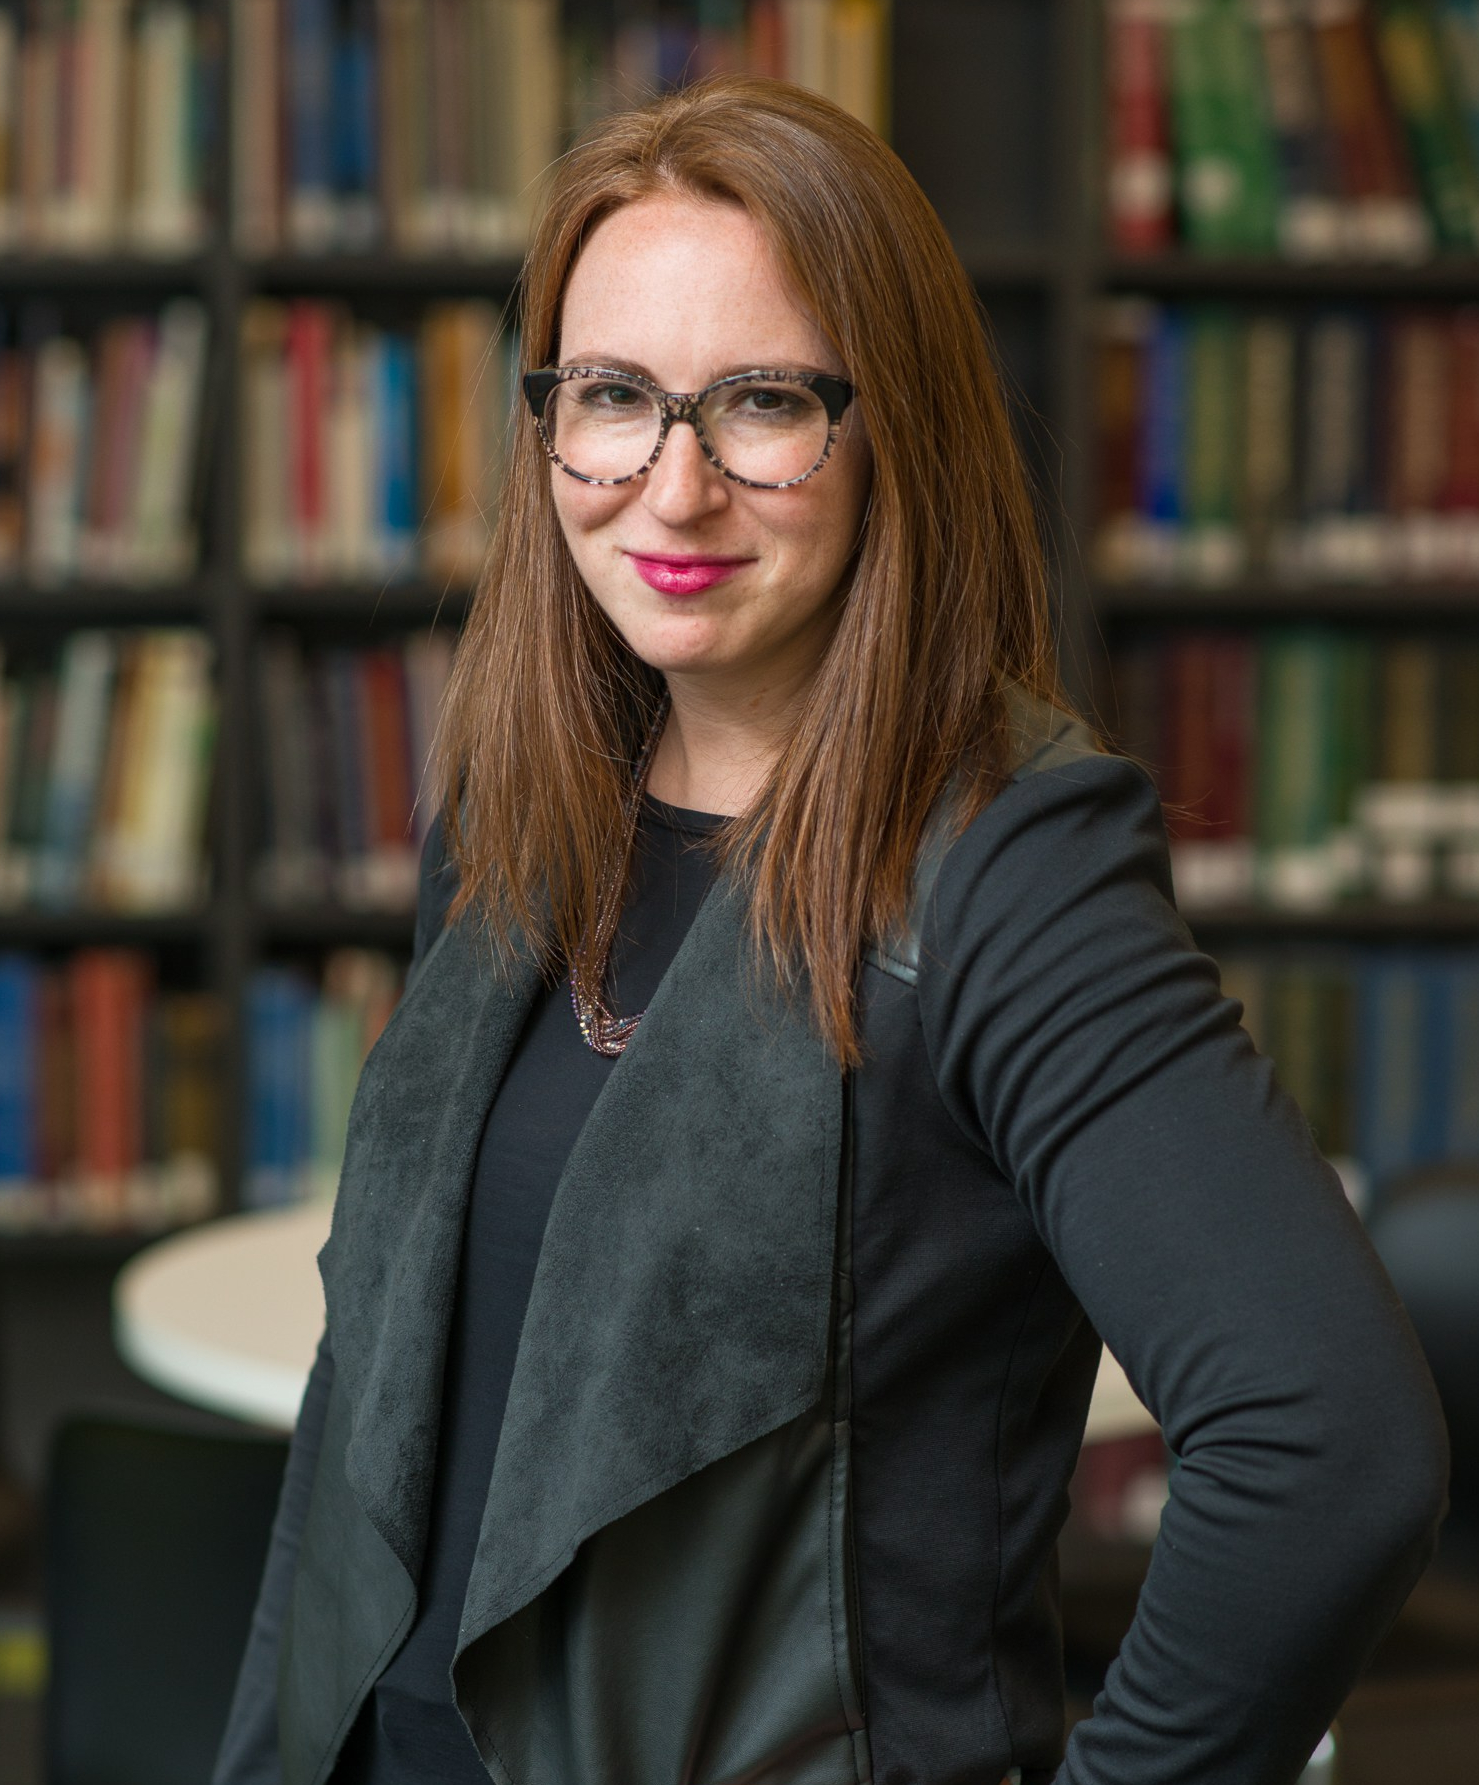 Image description: a redhead with black and white round glasses wearing a black shirt, black jacket, and a purple necklace poses in front of shelves of books. Photo courtesy of David Wolcheck.